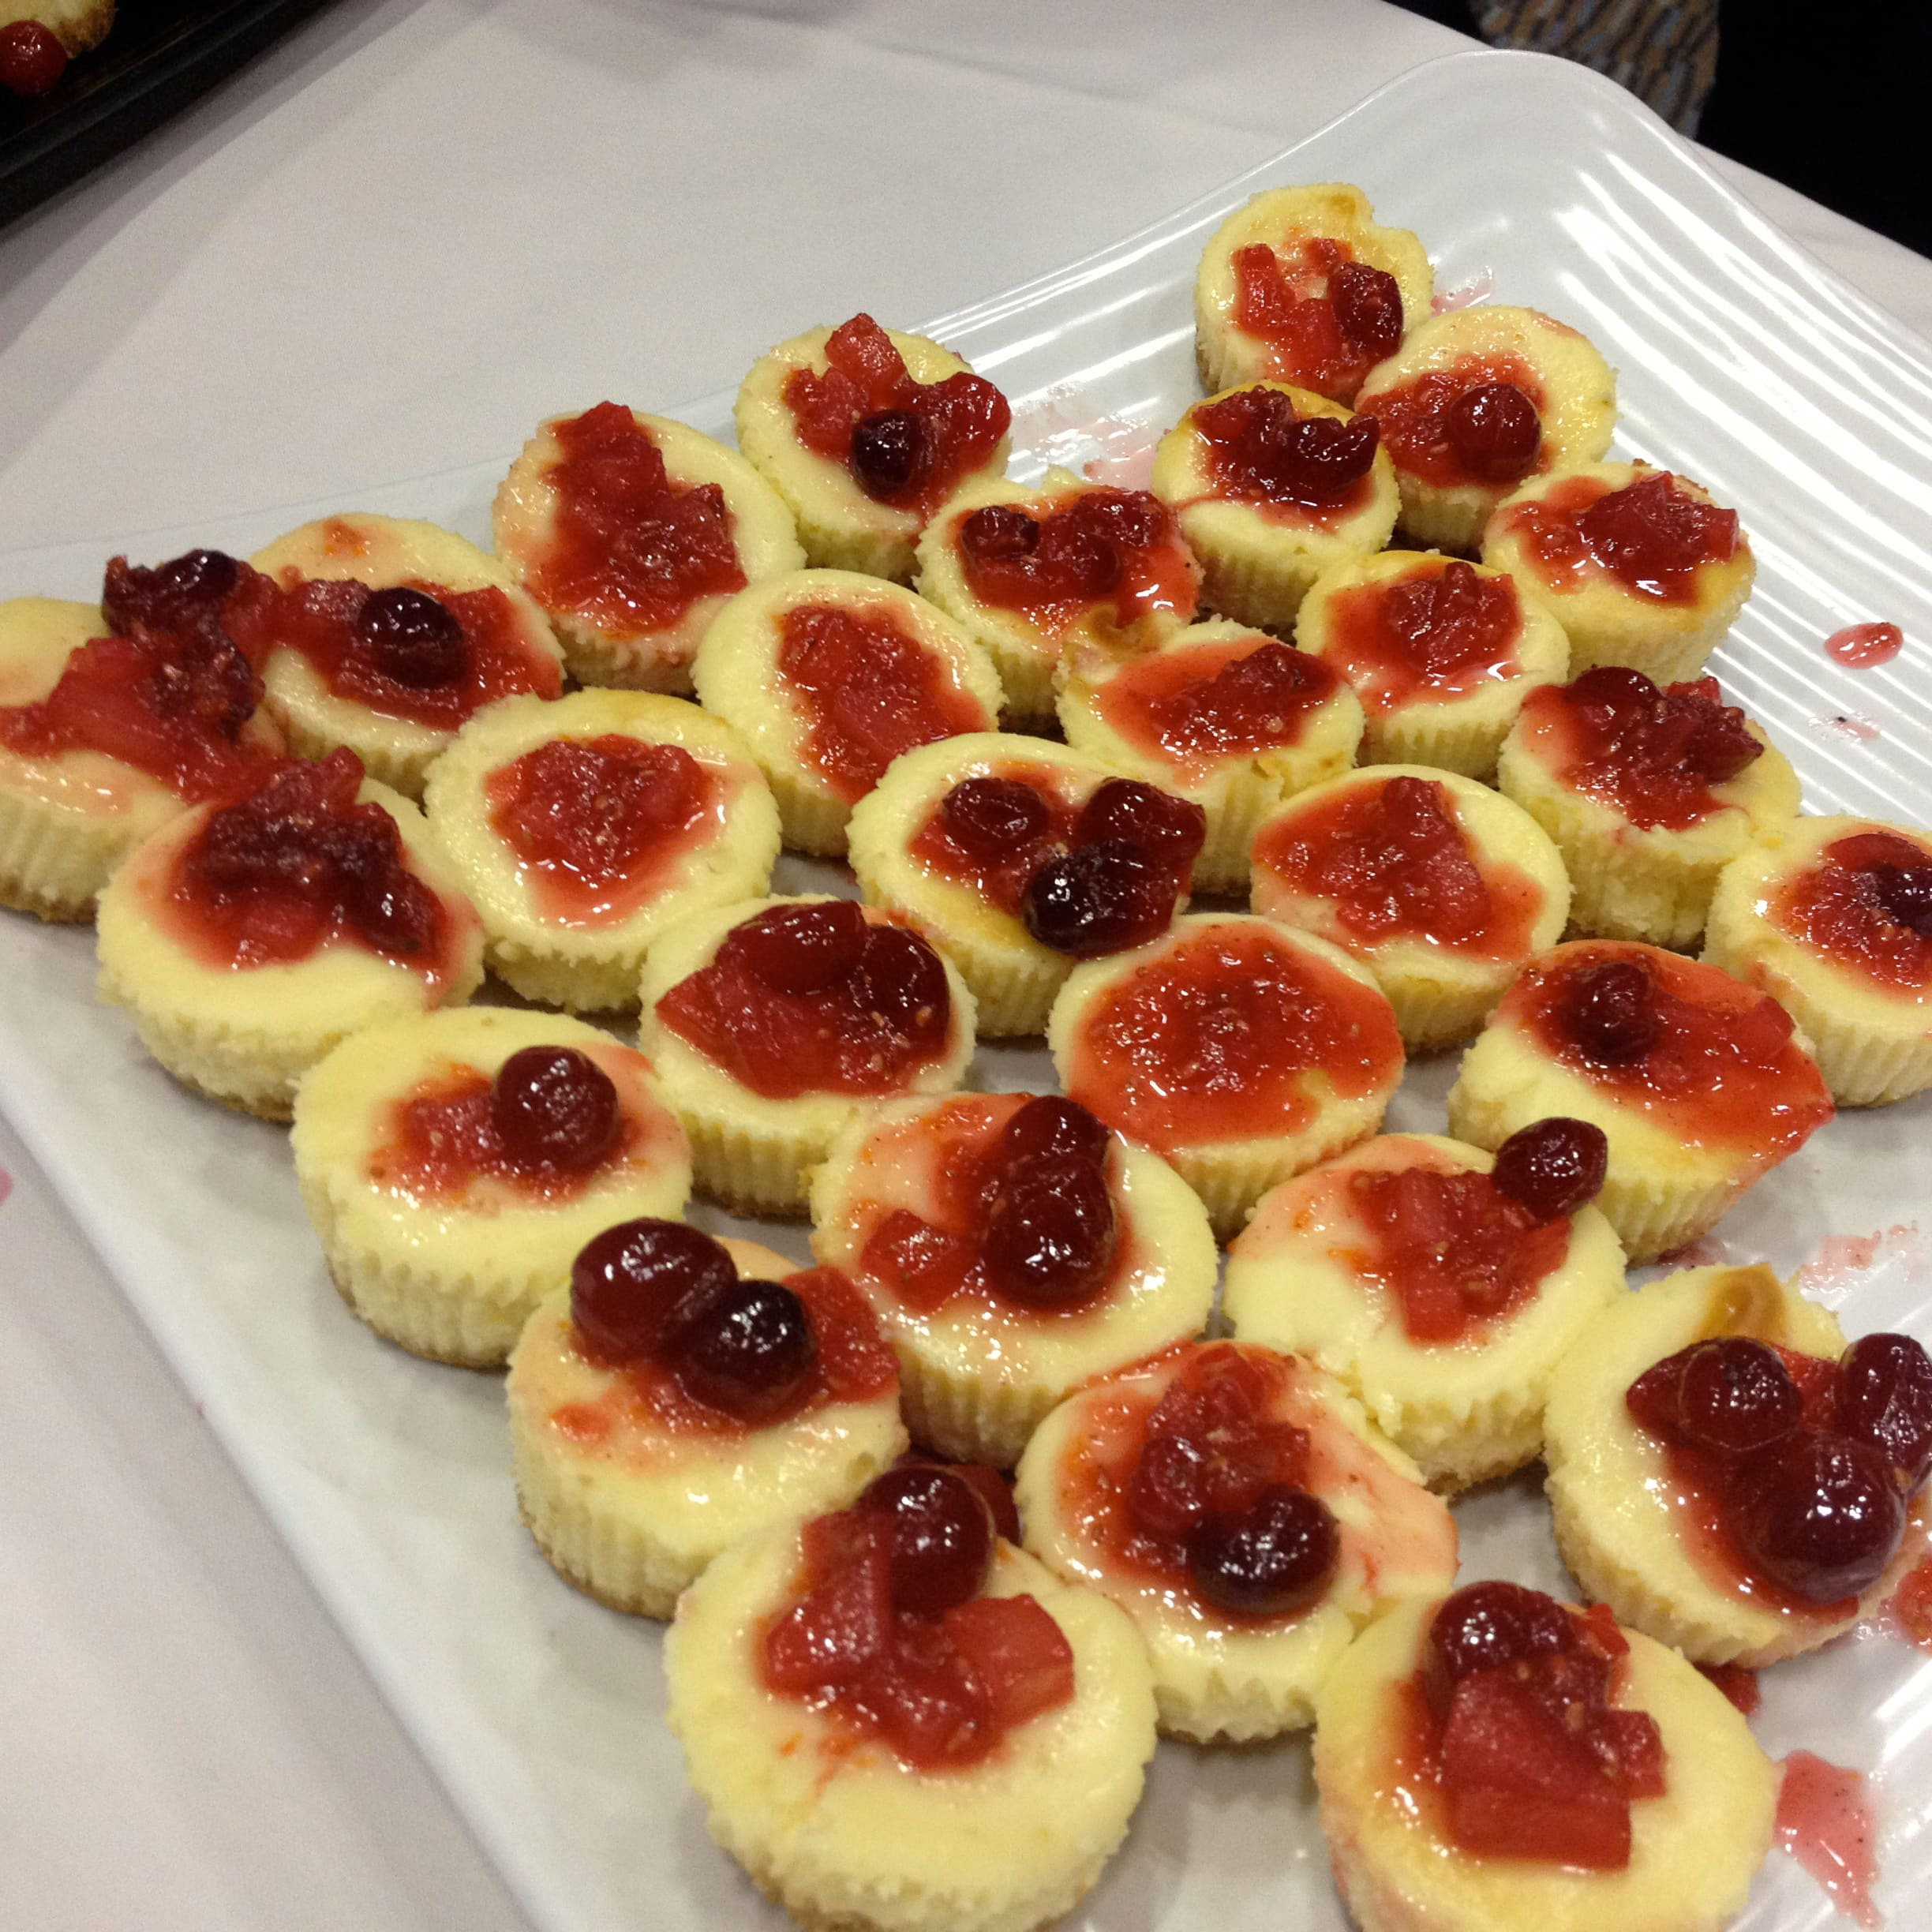 Mini cheesecakes with preserves